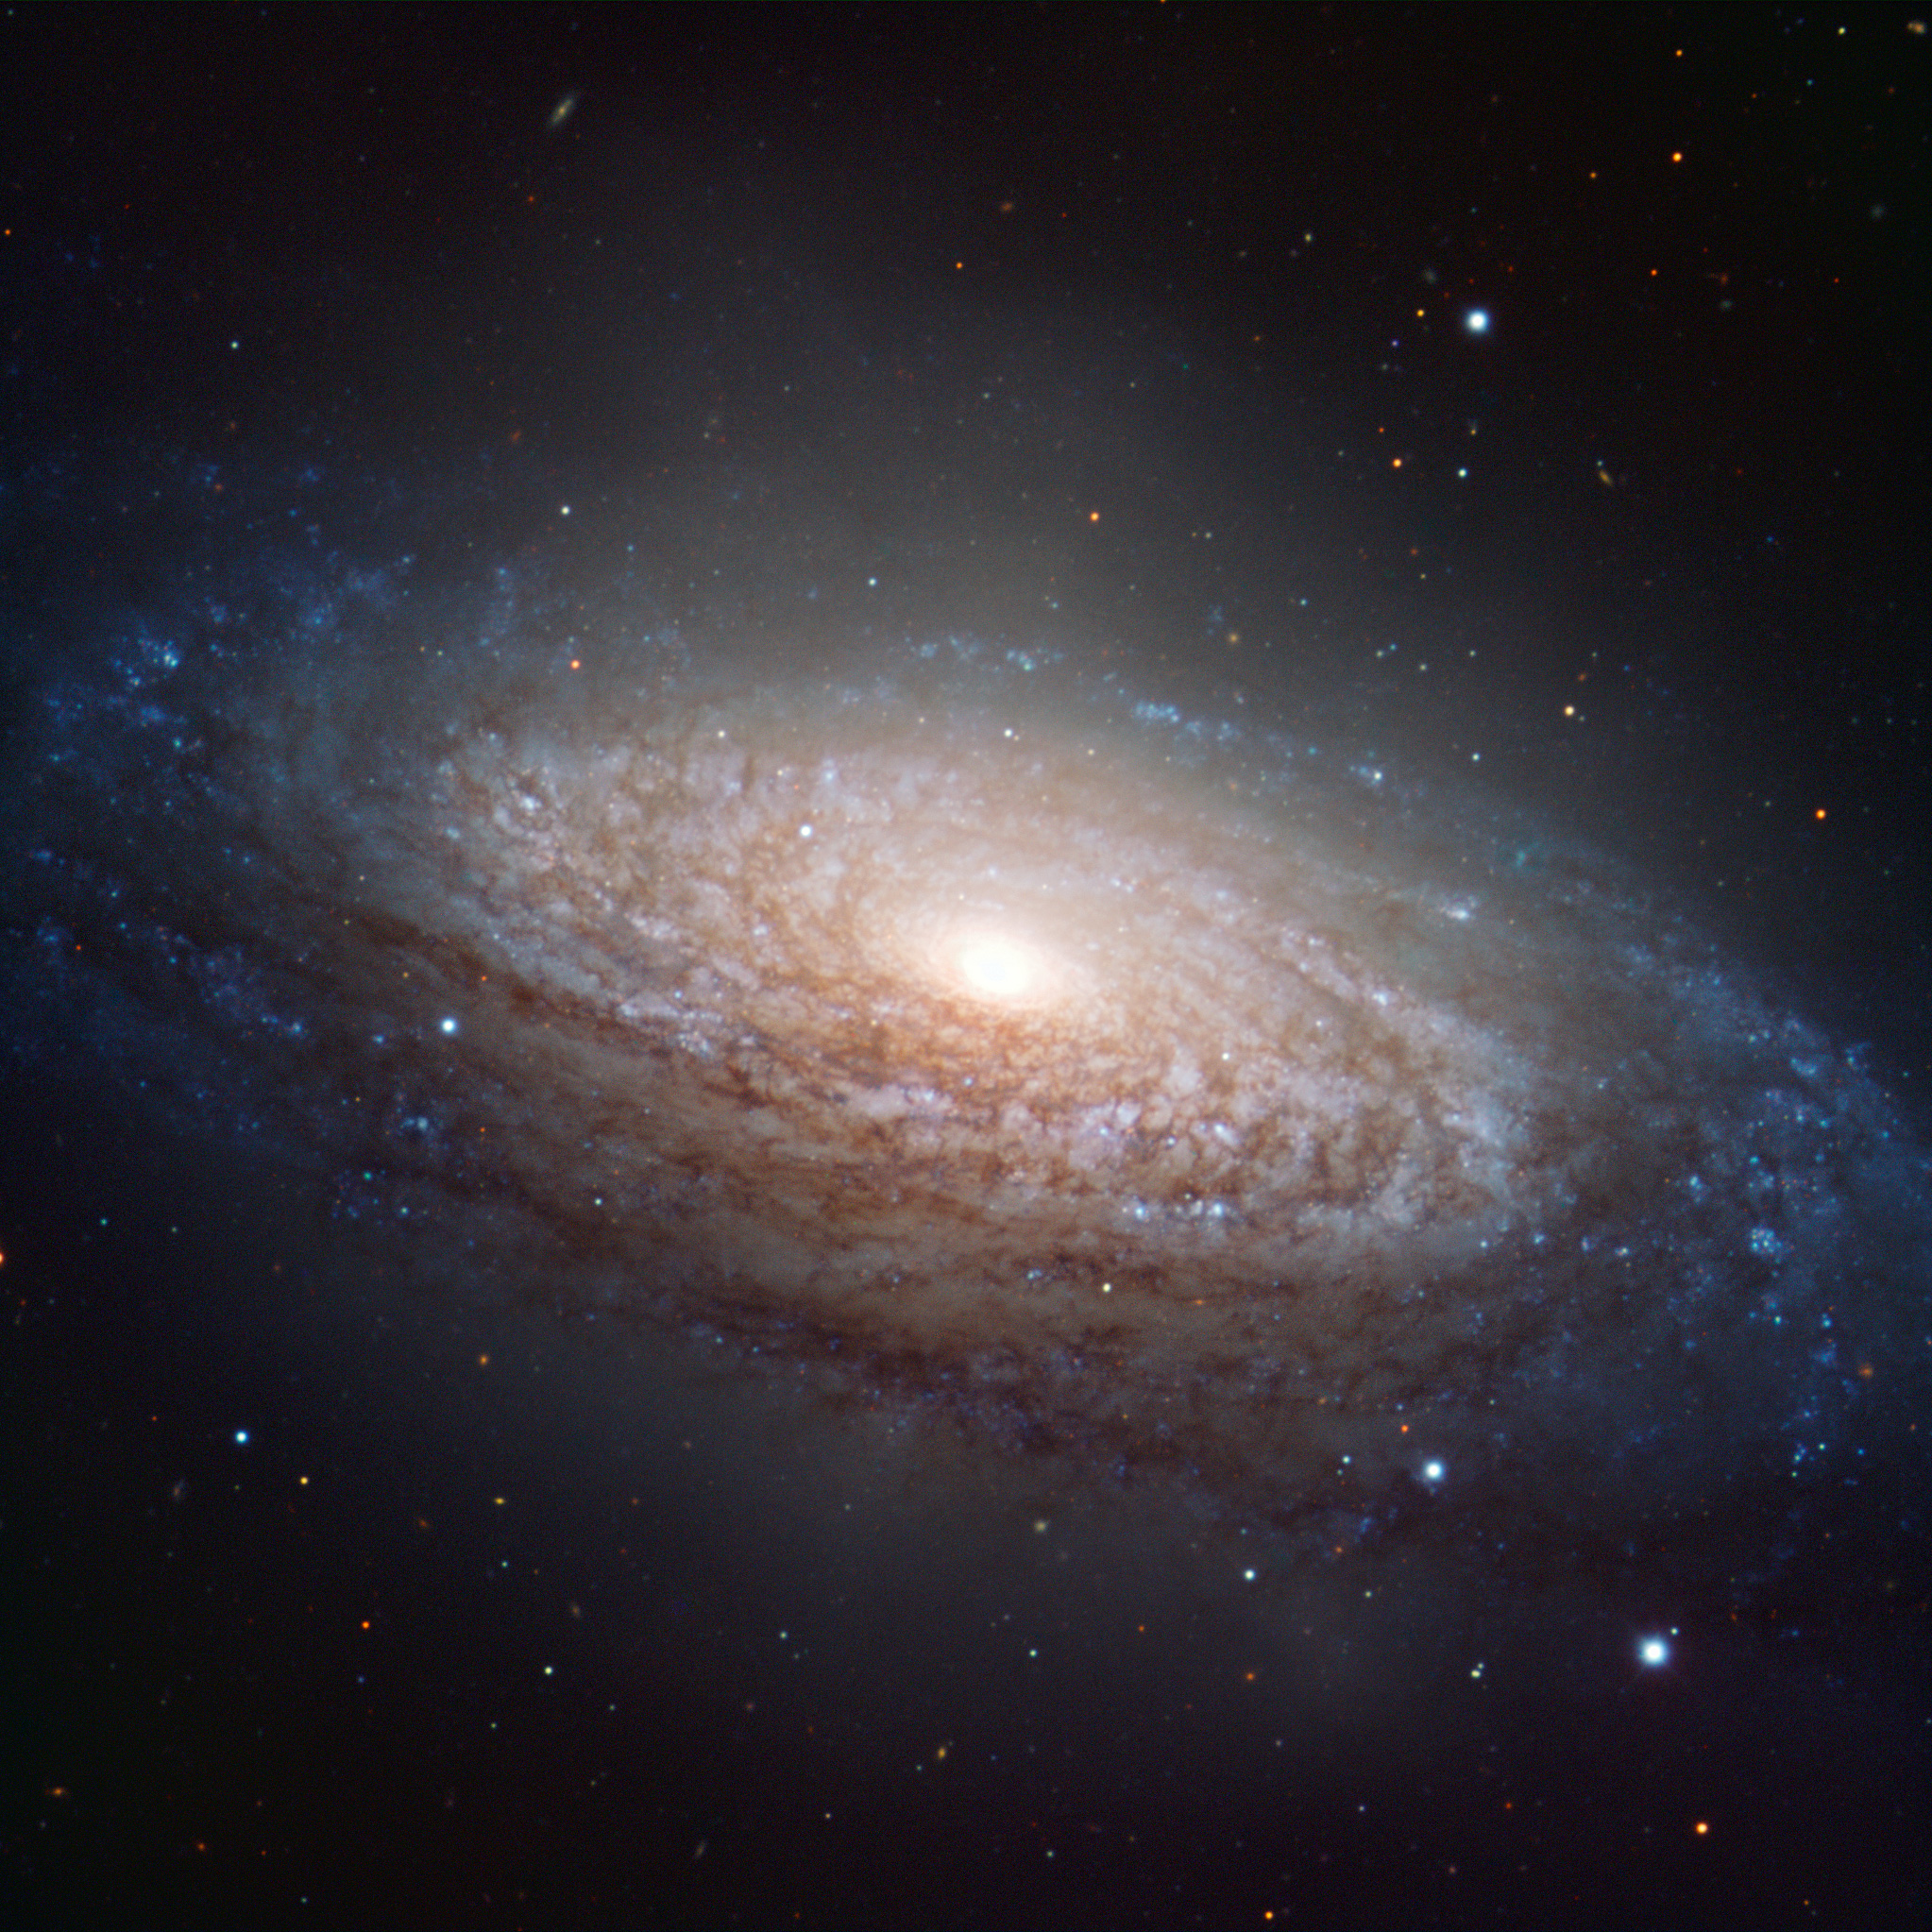 'Fluffy' Spiral Galaxy Shines in New Photo